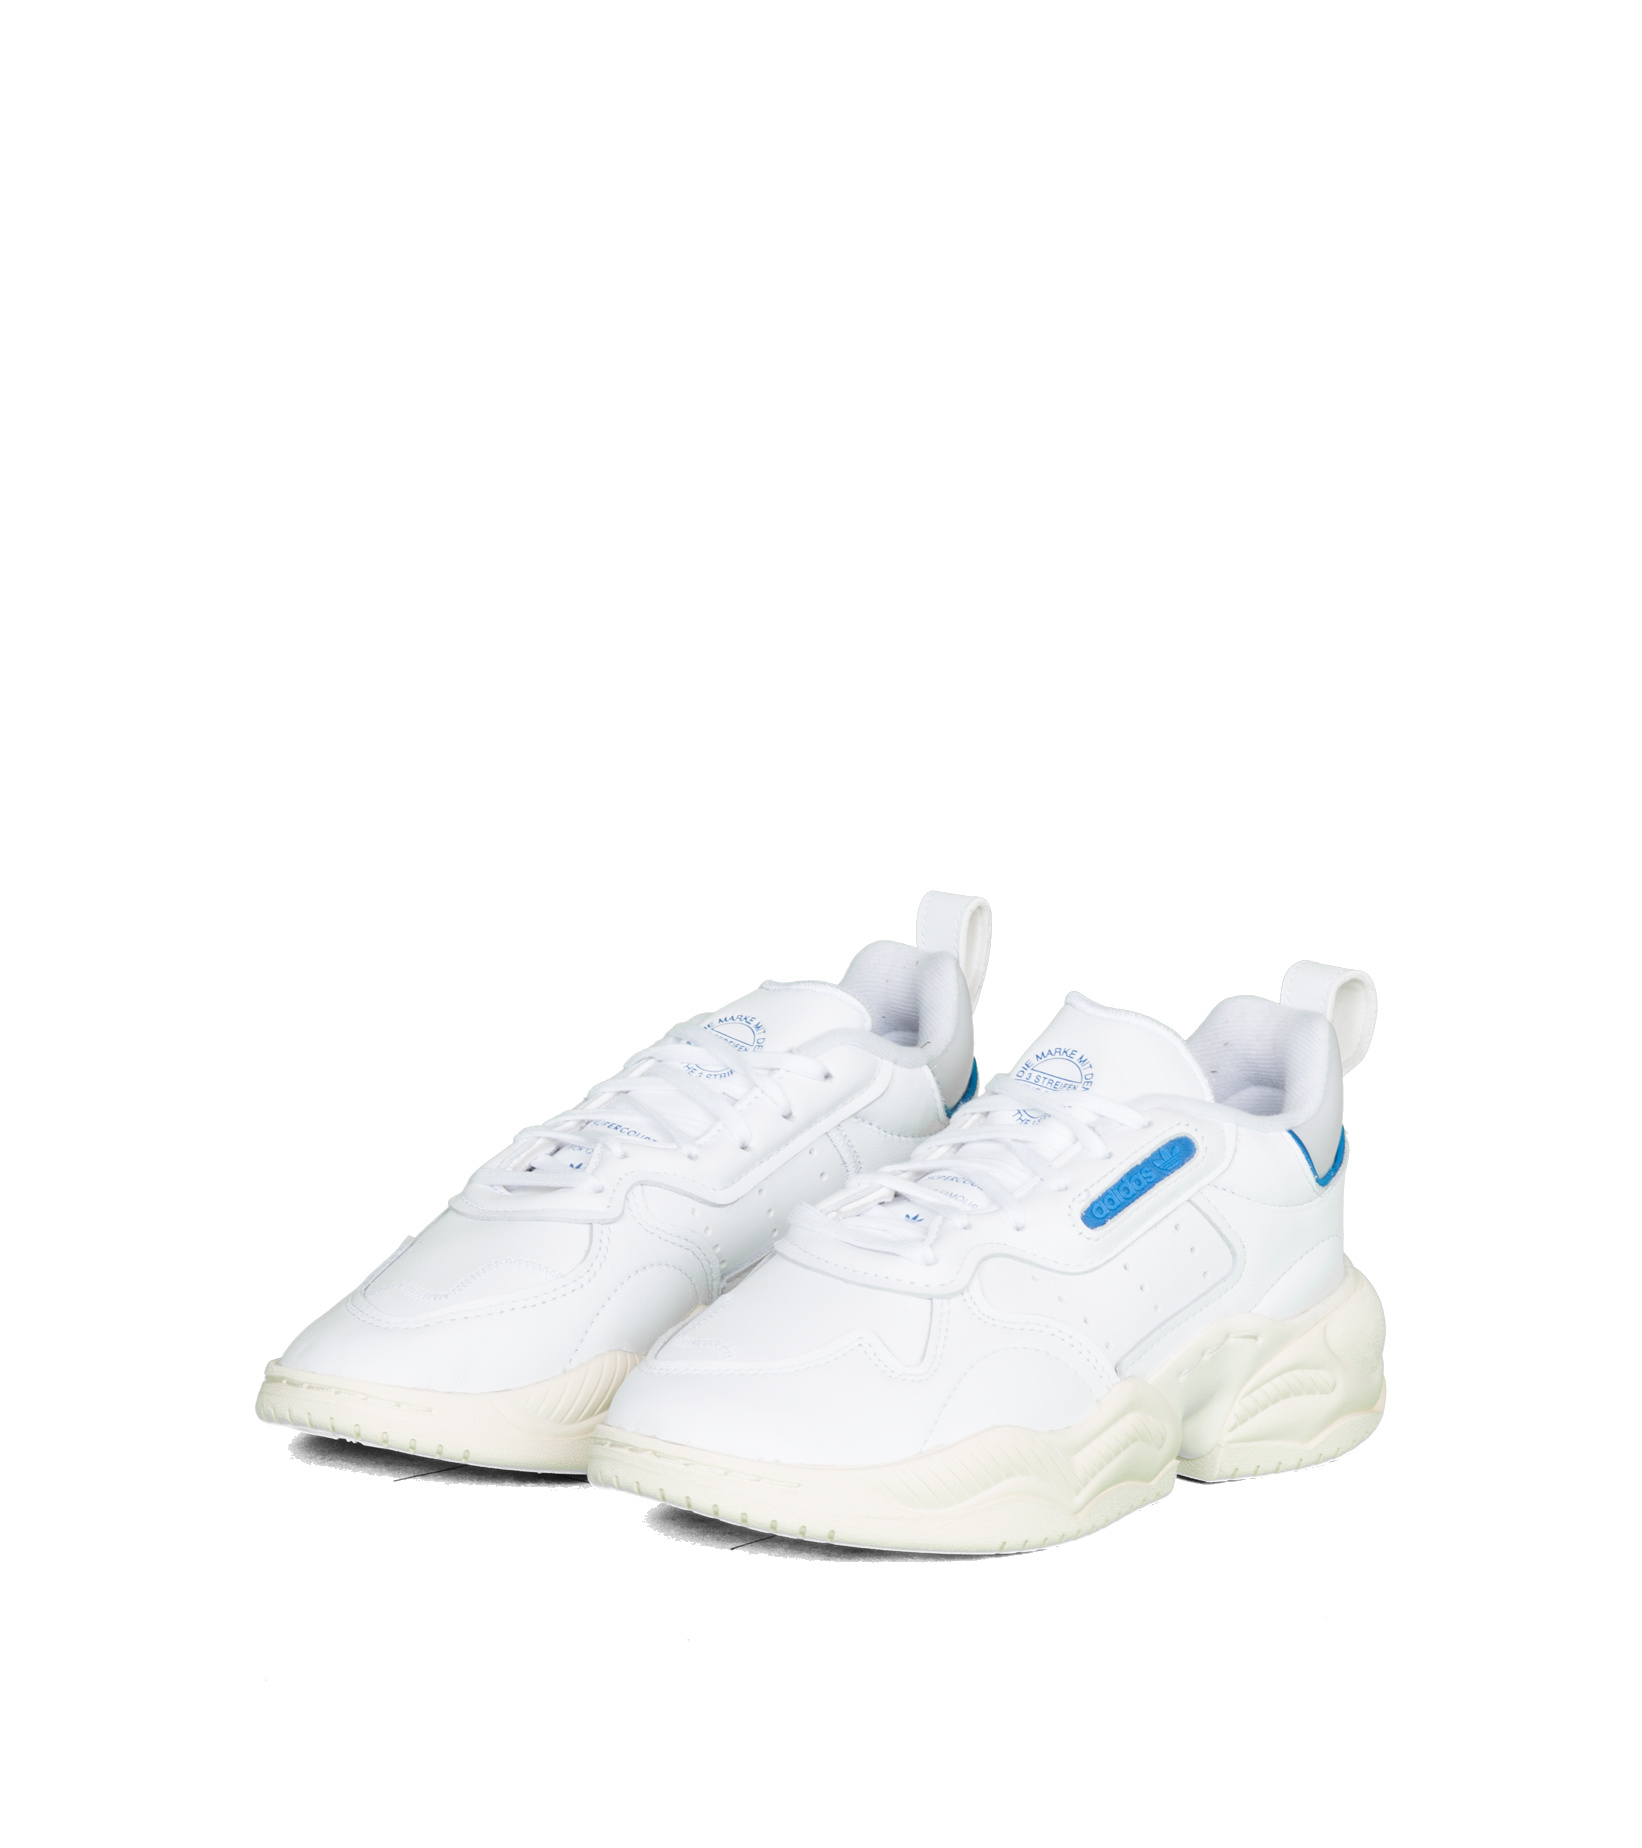 "Supercourt RX ""White/Blue""-1"